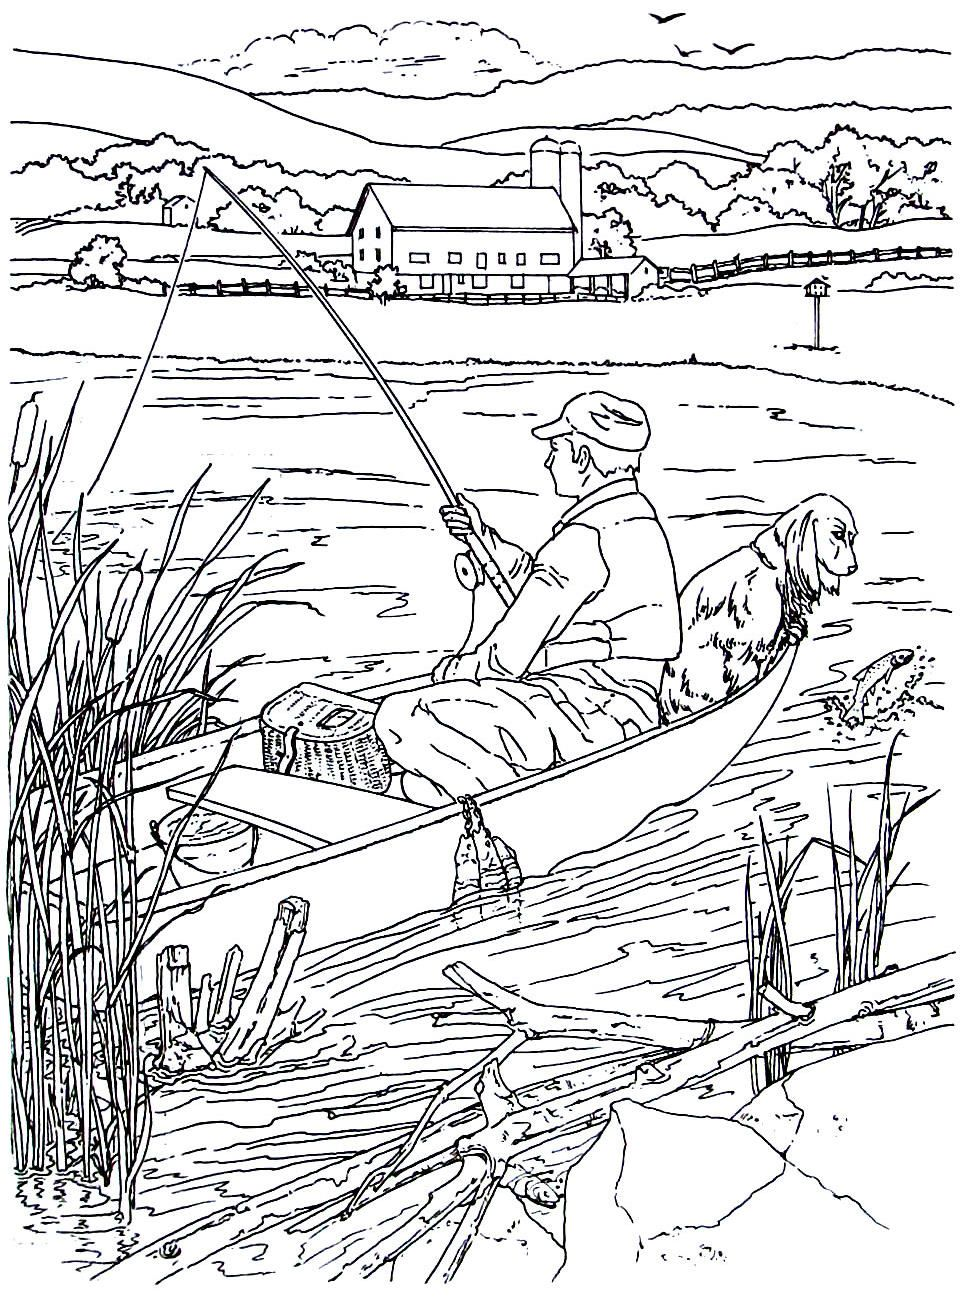 Fishing in a rowboat - living in the country coloring book page ...